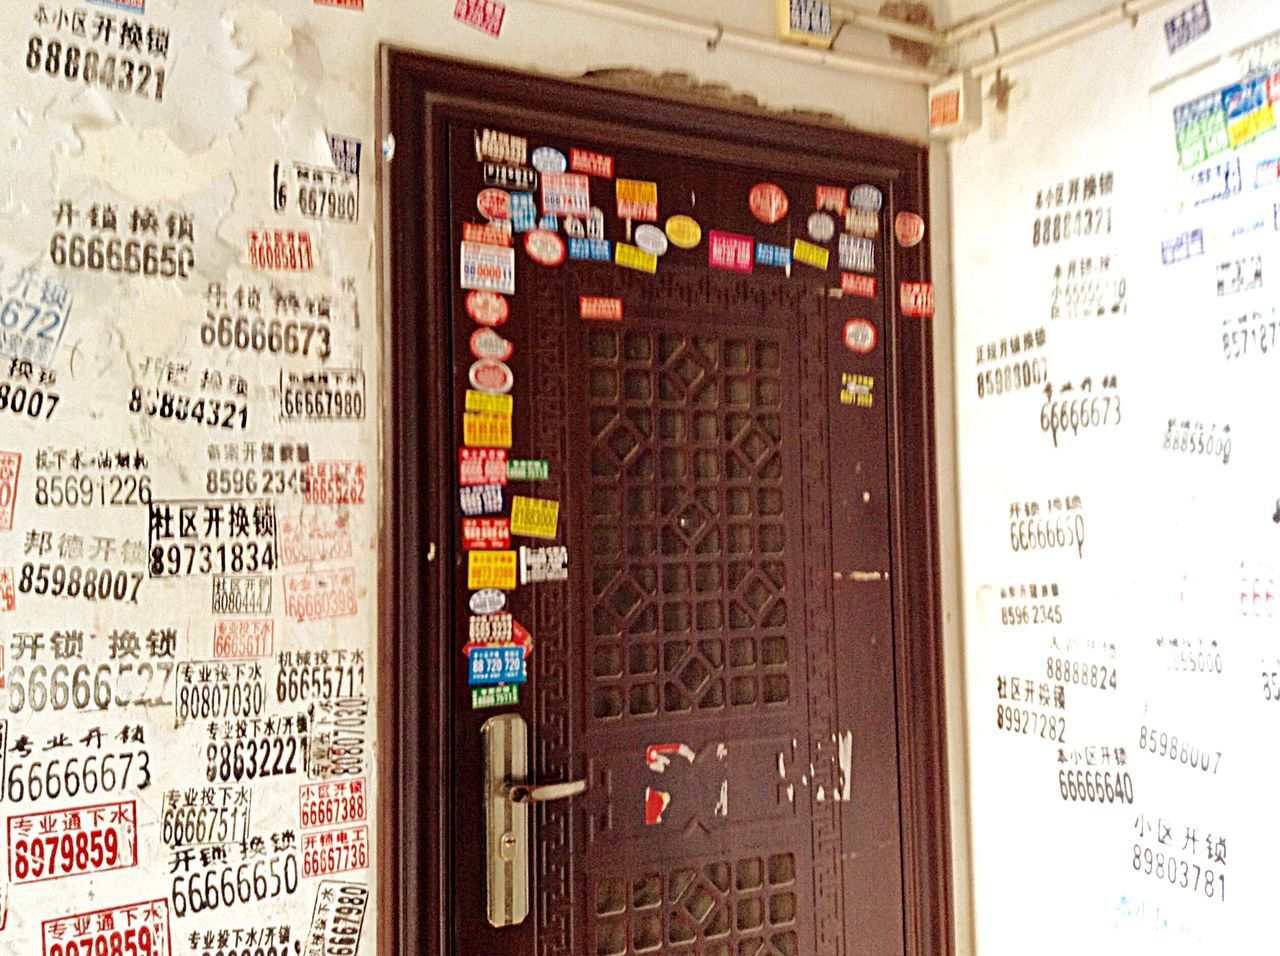 Advertisements all over the wall Advertisement Advertising Ads Wall All Over The Wall Apartment Building Indoor Interior Style Door Entry Door Stairway Travel Qingdao China China Decoration Colour Of Life Culture